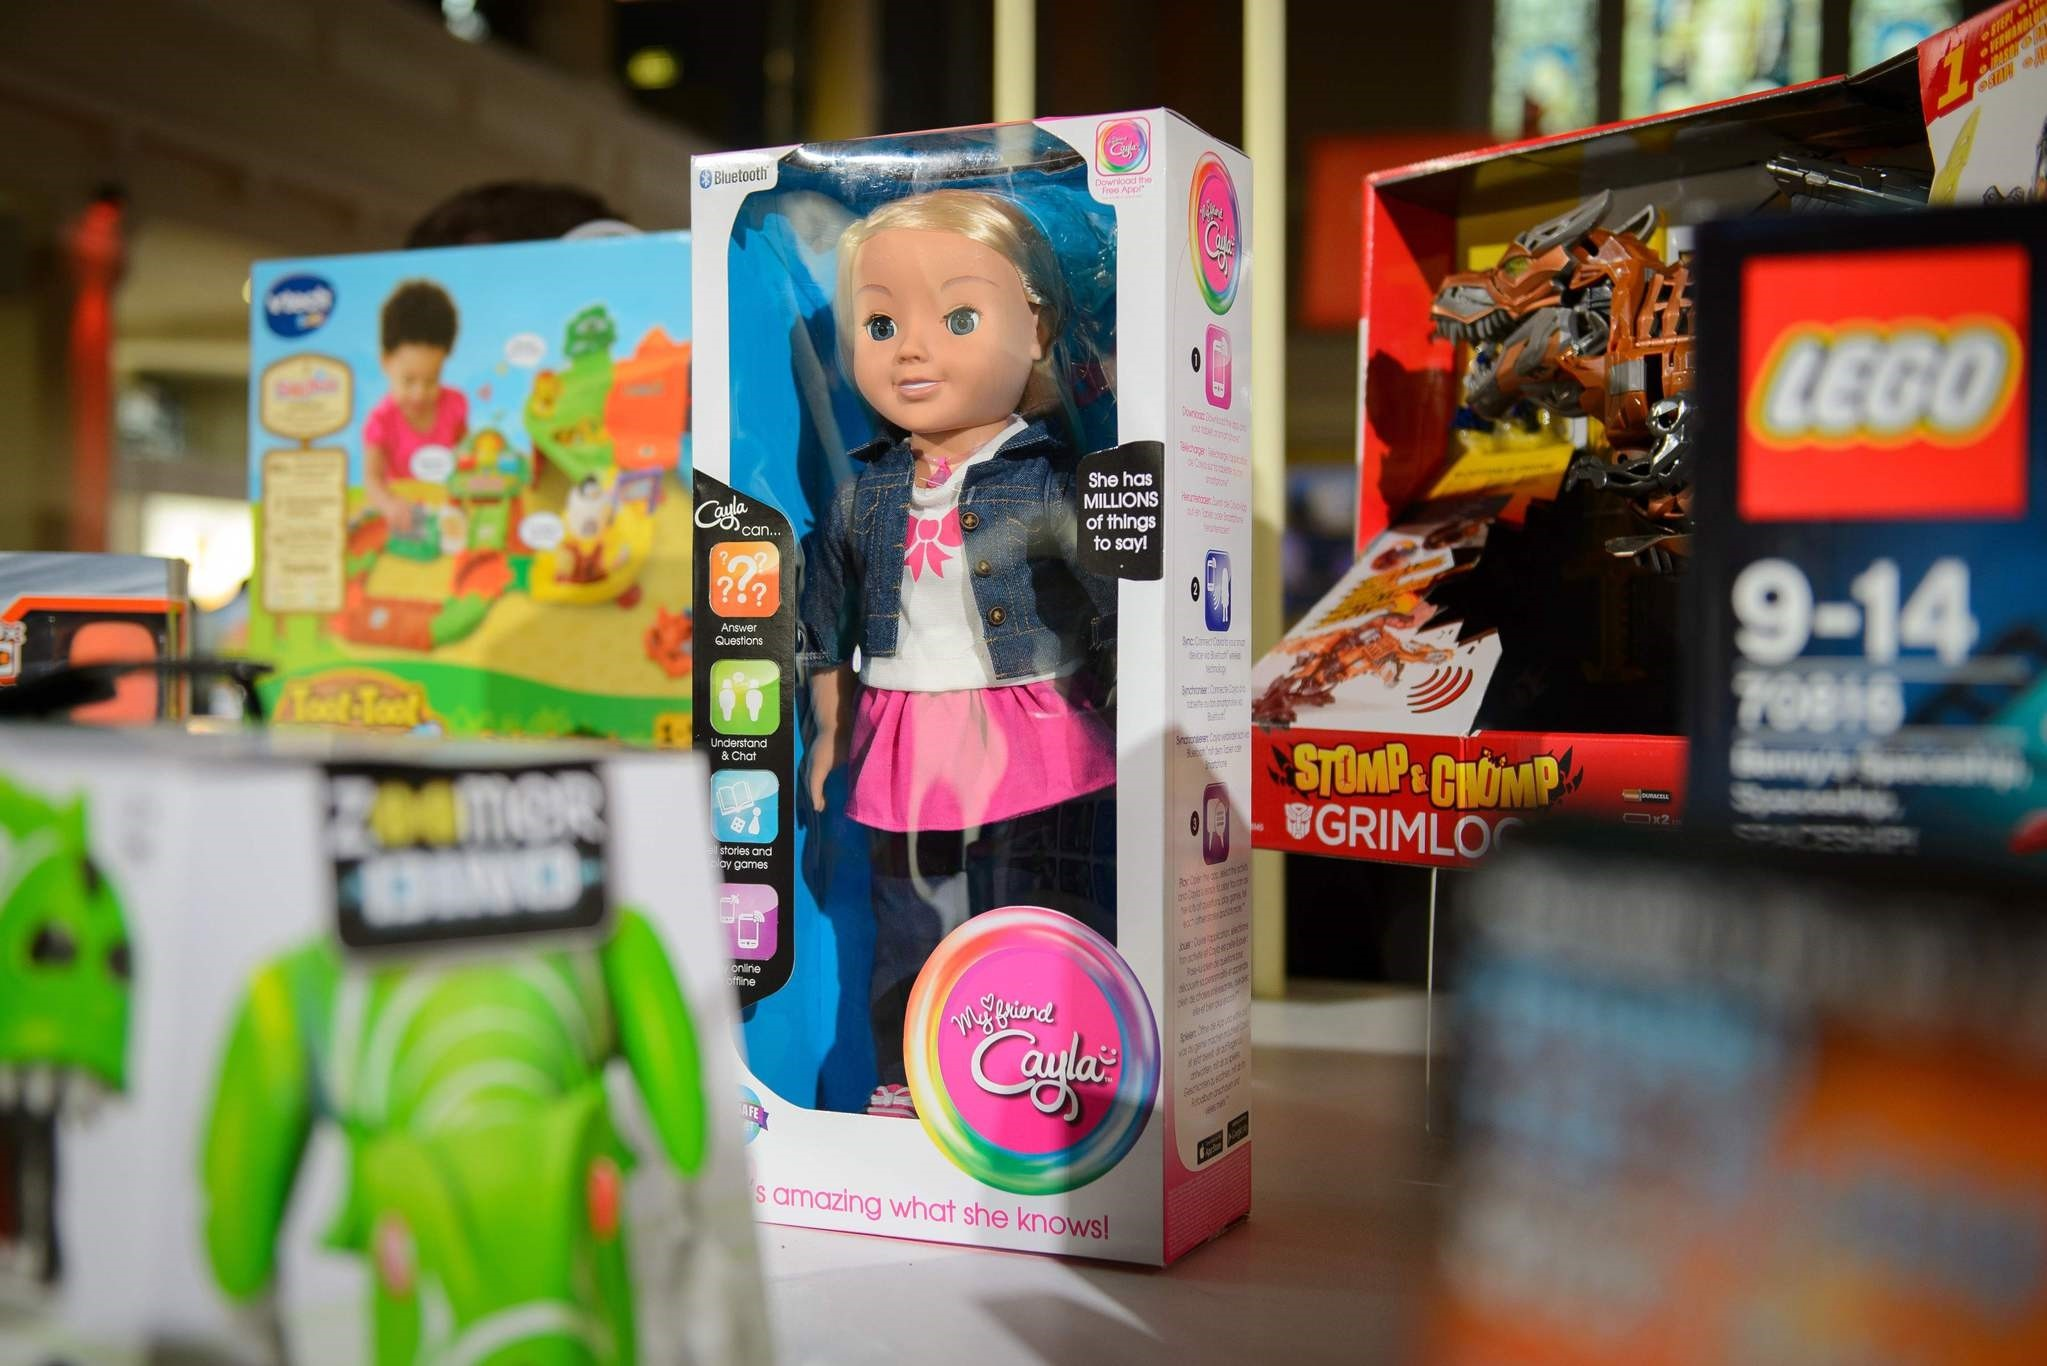 The talking doll ,My Friend Cayla, displayed at the DreamToys toy fair in central London, on November 5, 2014. (AFP Photo)